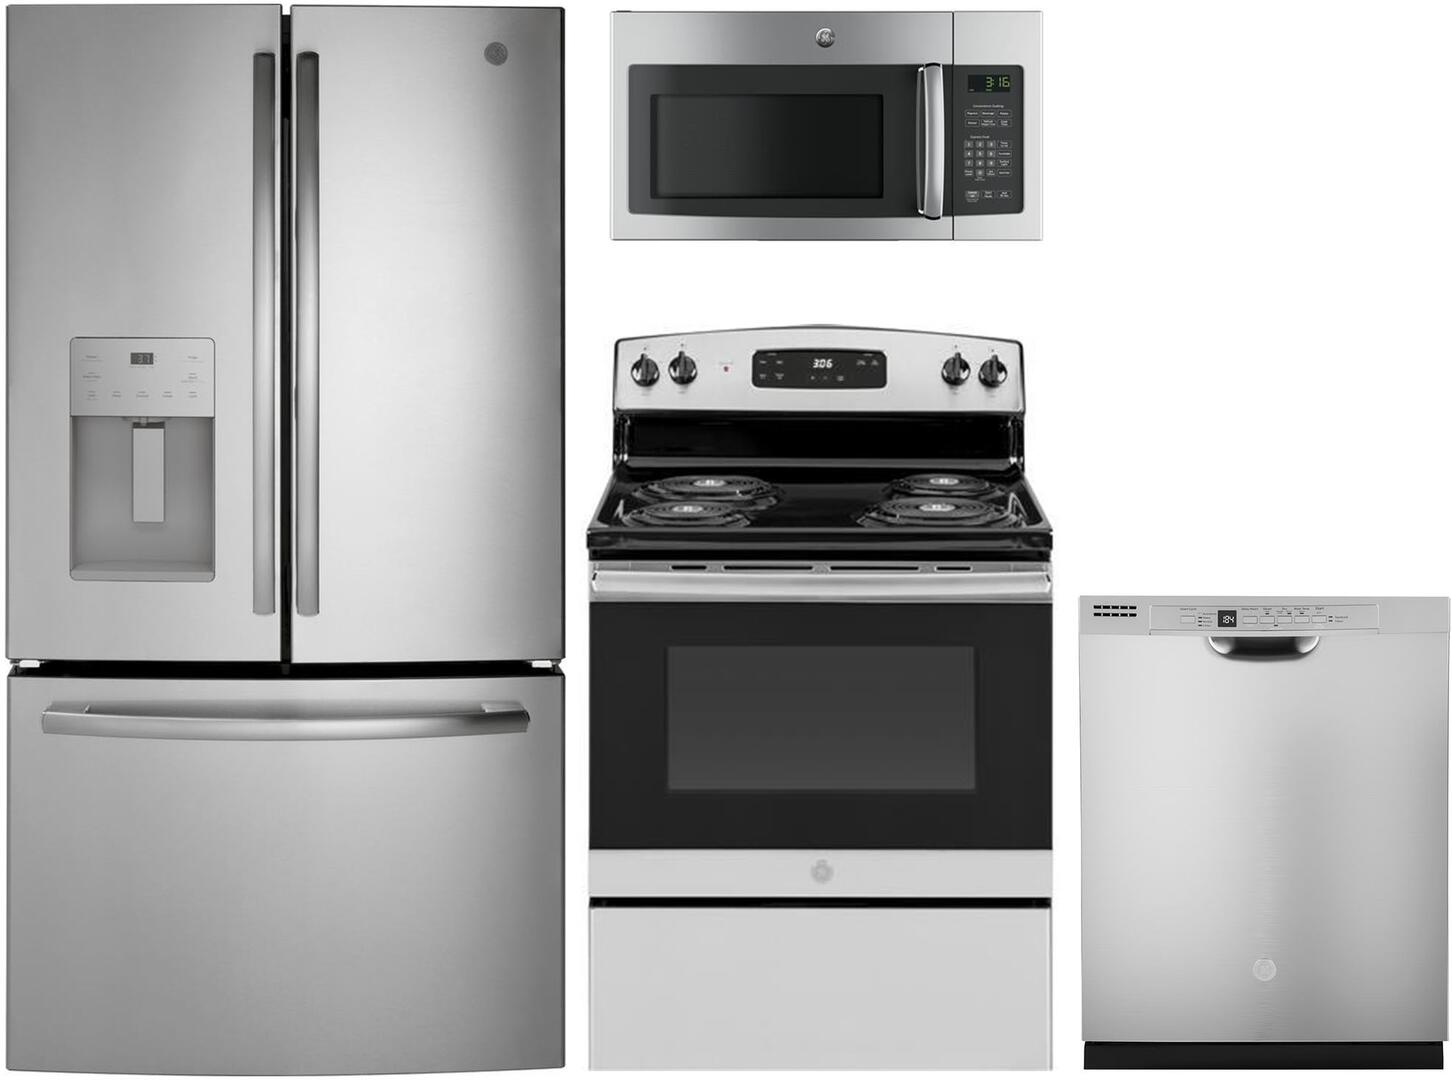 GE 1087458 4 piece Stainless Steel Kitchen Appliances Package